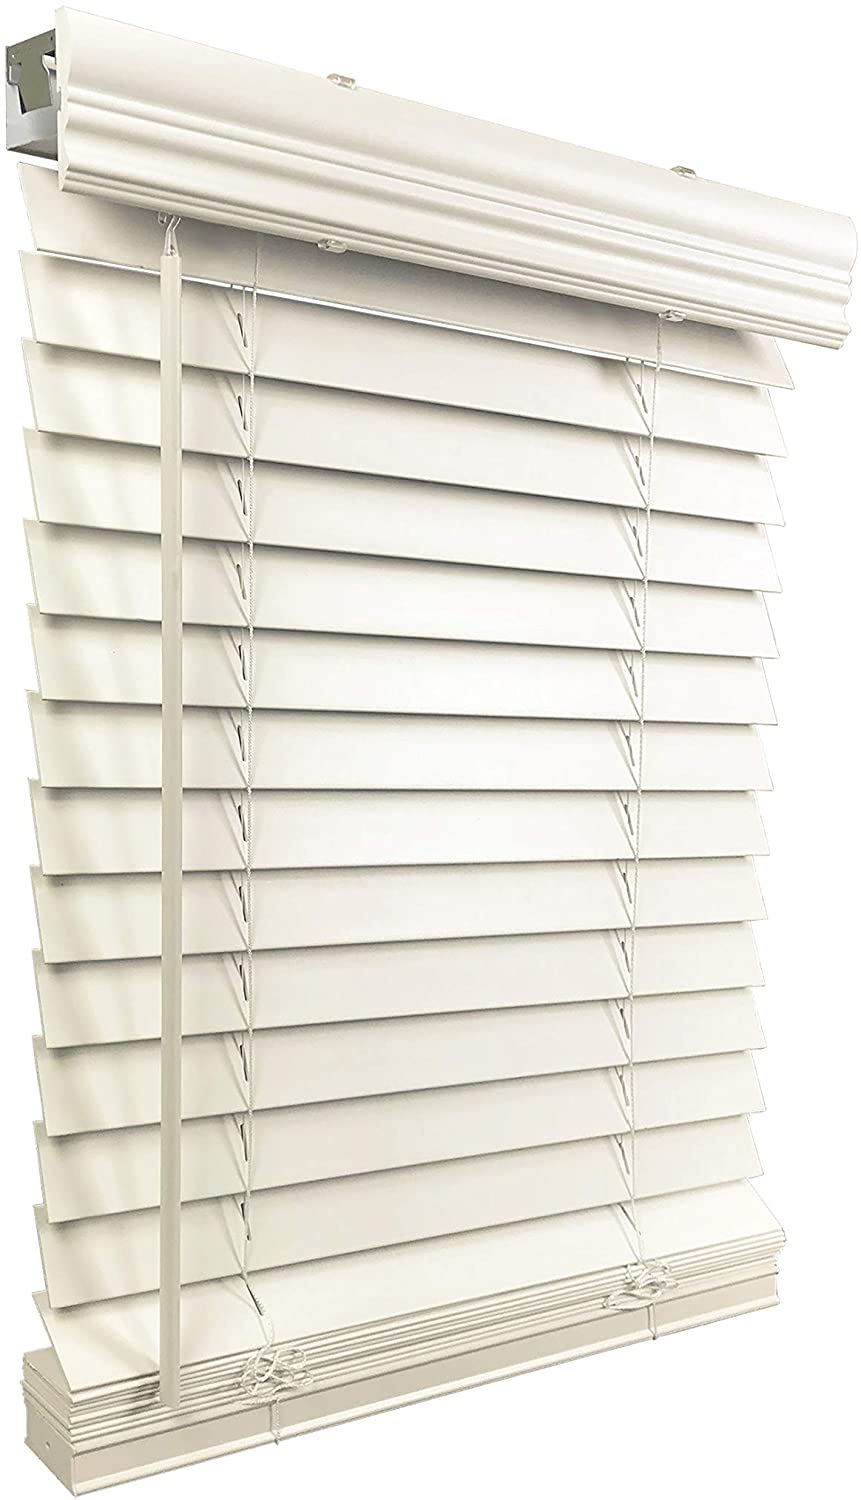 "US Window And Floor 2"" Faux Wood 30.5"" W x 36"" H, Inside Mount Cordless Blinds, 30.5 x 36, White"